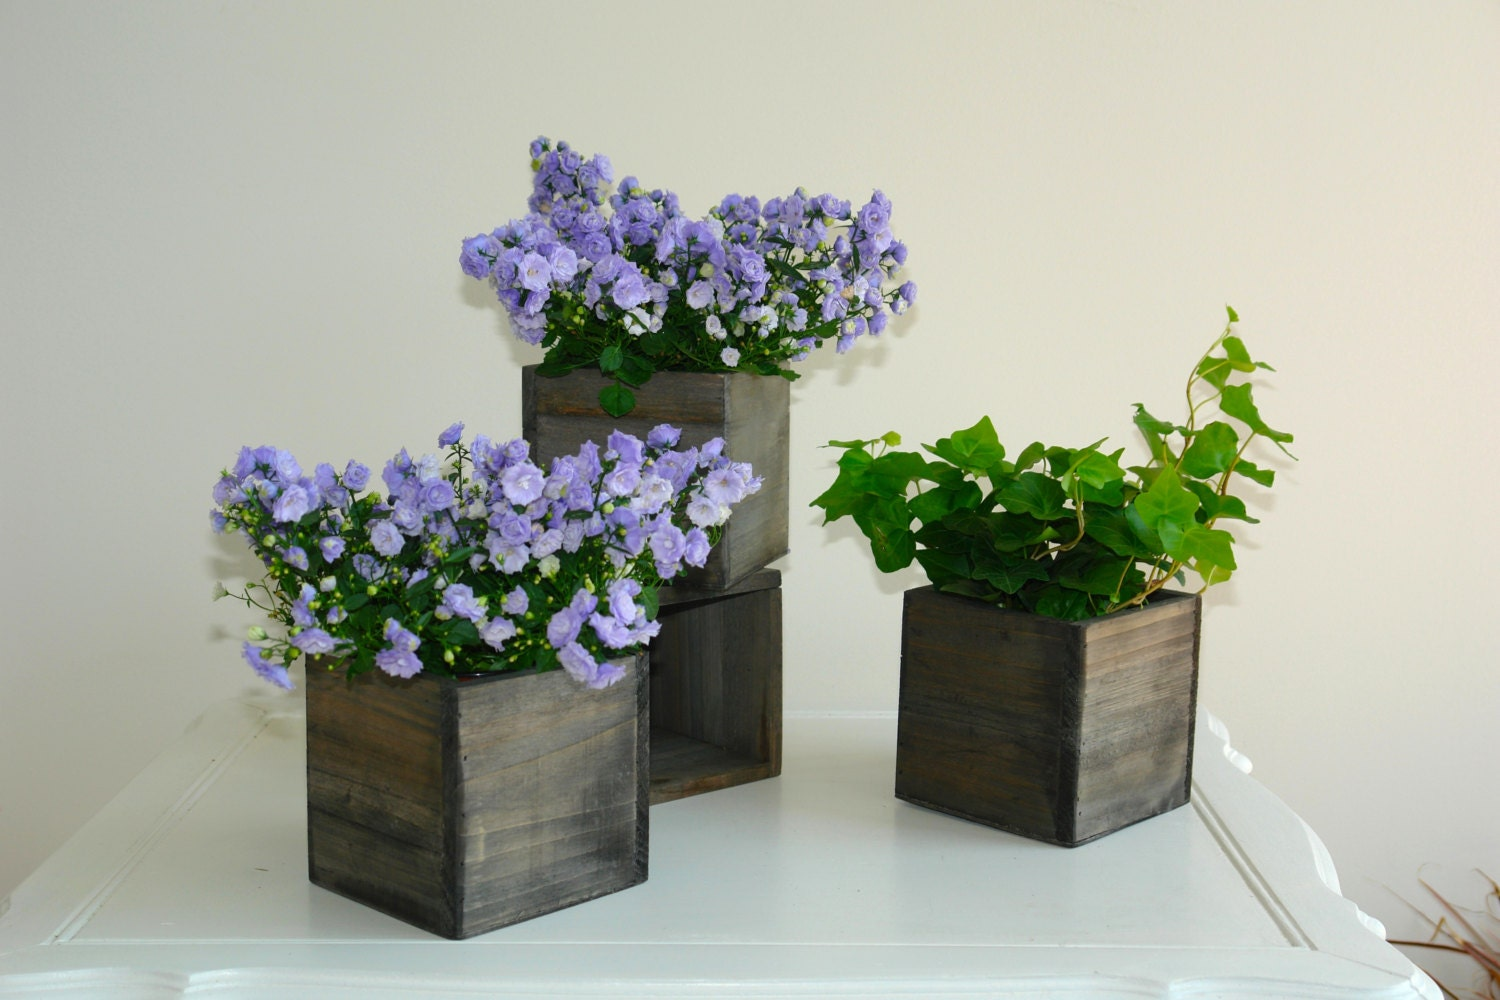 Wood box woodland planter flower box rustic pot square vases - Wooden containers for flowers ...